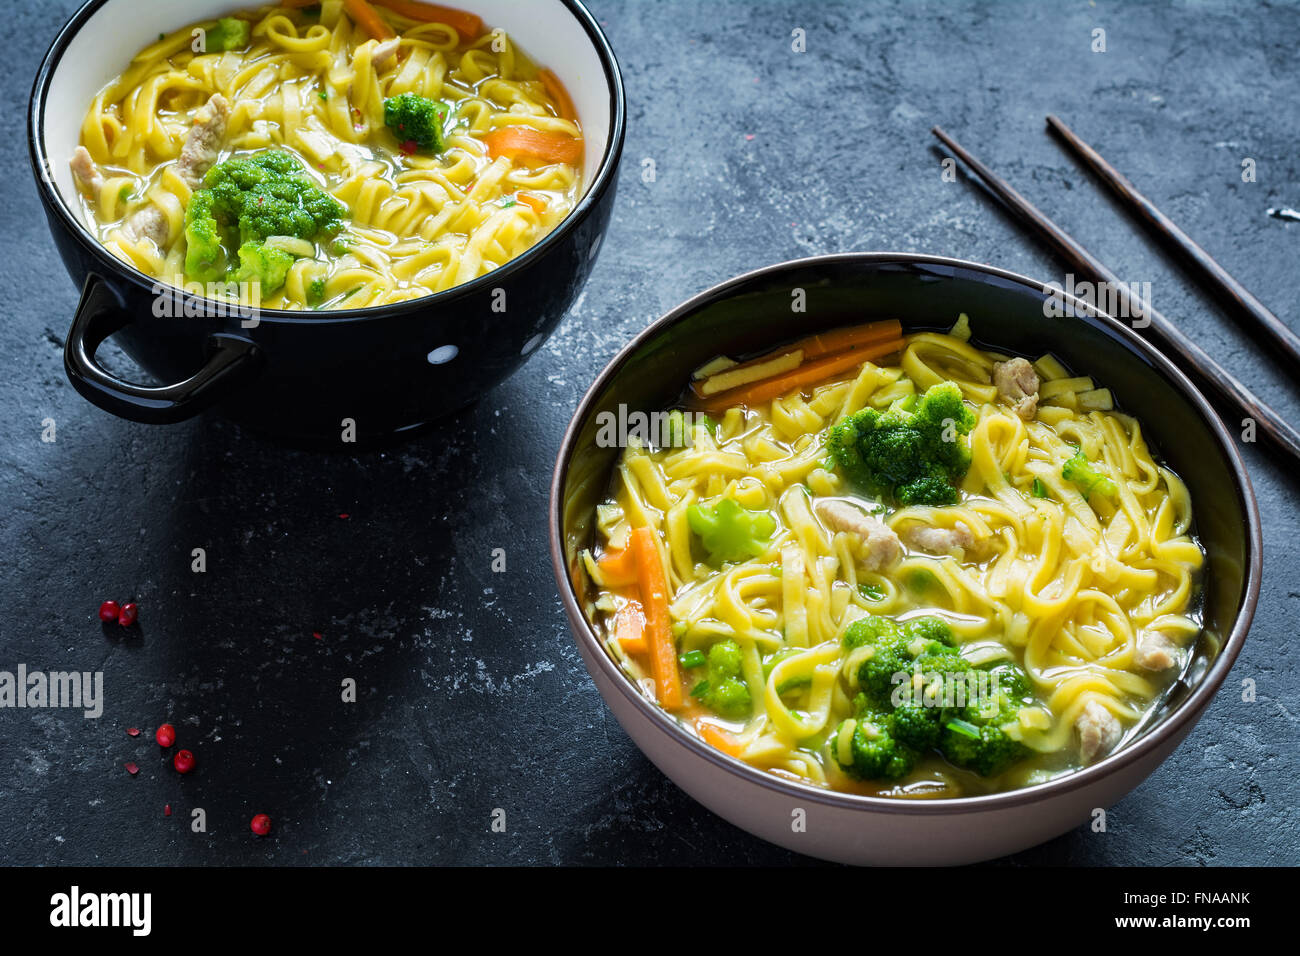 Asian egg noodle soup with vegetables and pork on dark slate background. Top view - Stock Image